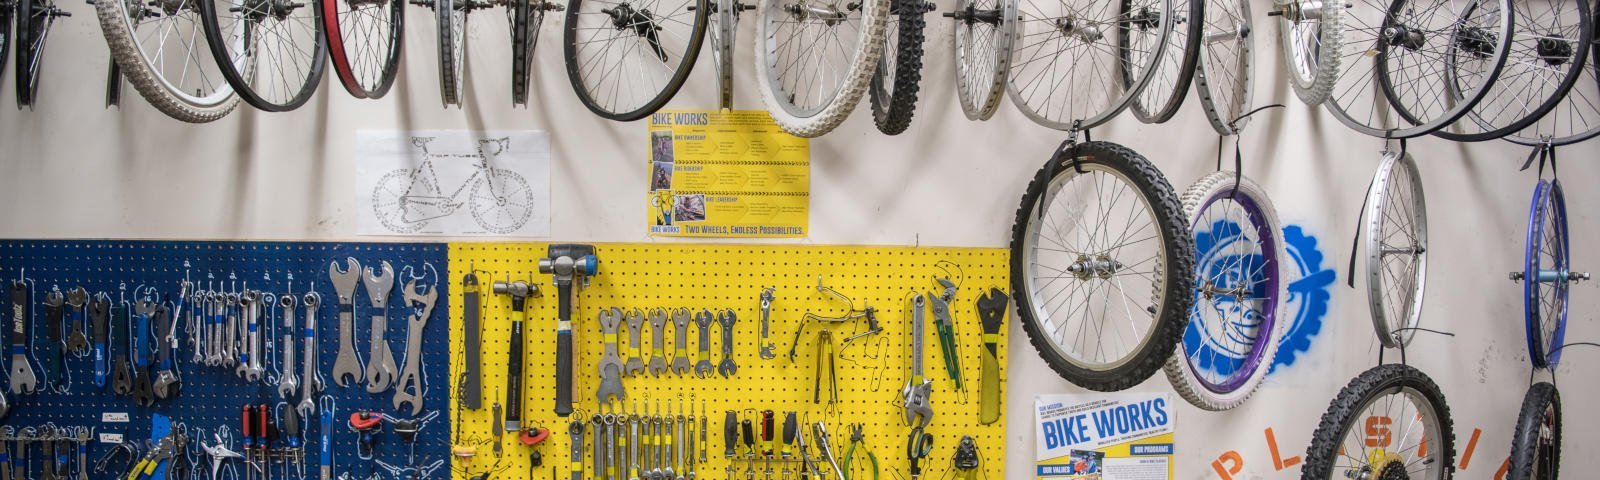 Several bicycle tires arrayed across the top with a blue and yellow pegboard full of tools